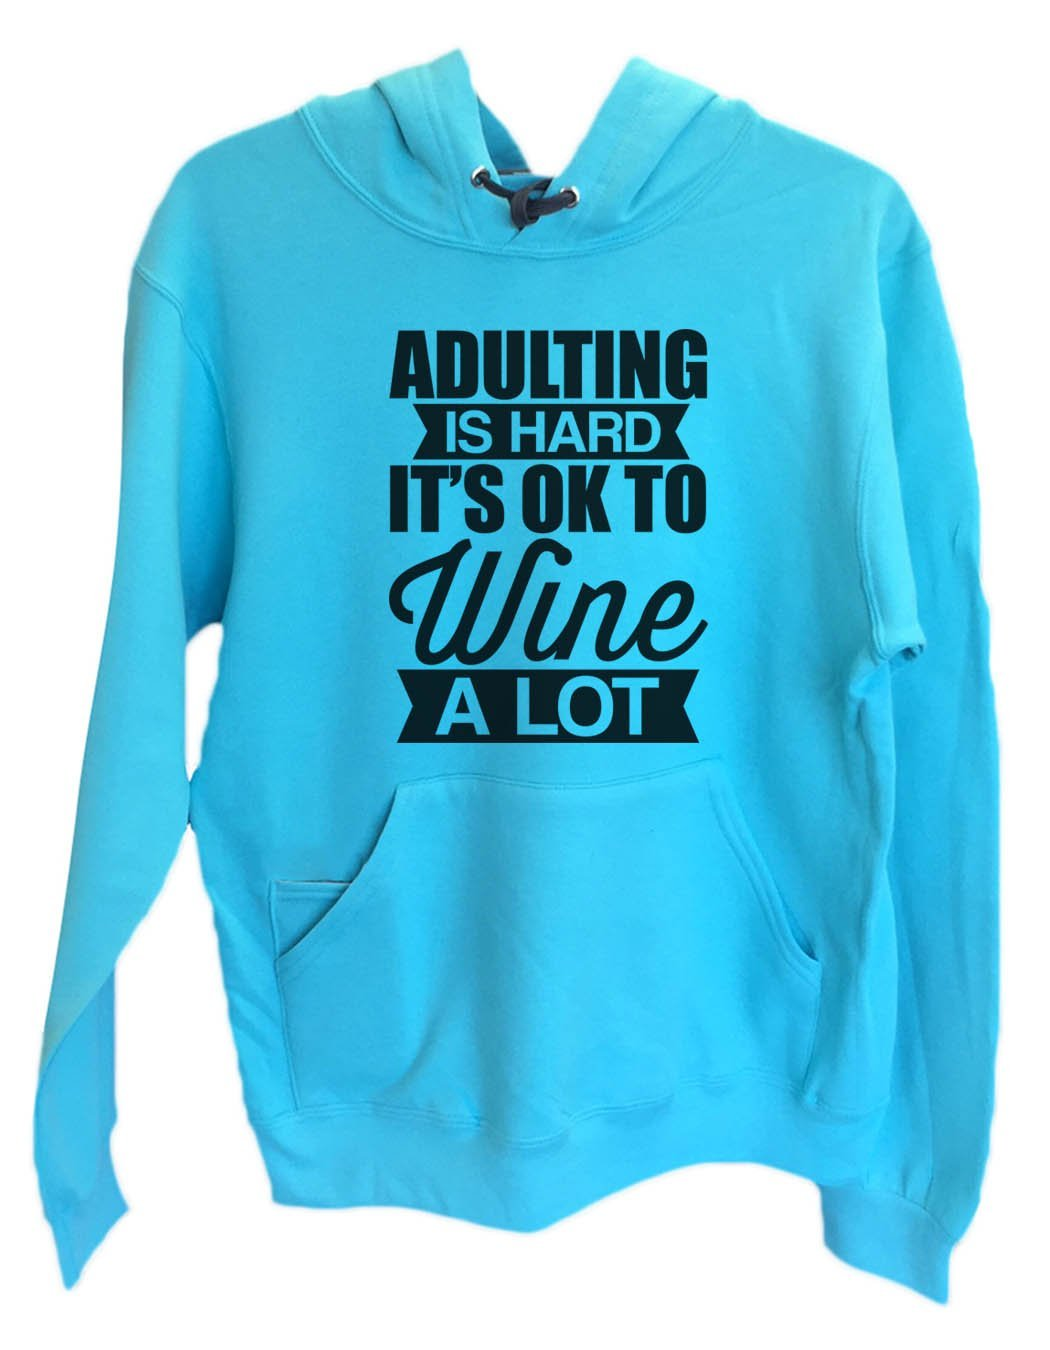 UNISEX HOODIE - Adulting Is Hard It's Ok To Wine A Lot - FUNNY MENS AND WOMENS HOODED SWEATSHIRTS - 2129 Funny Shirt Small / Turquoise